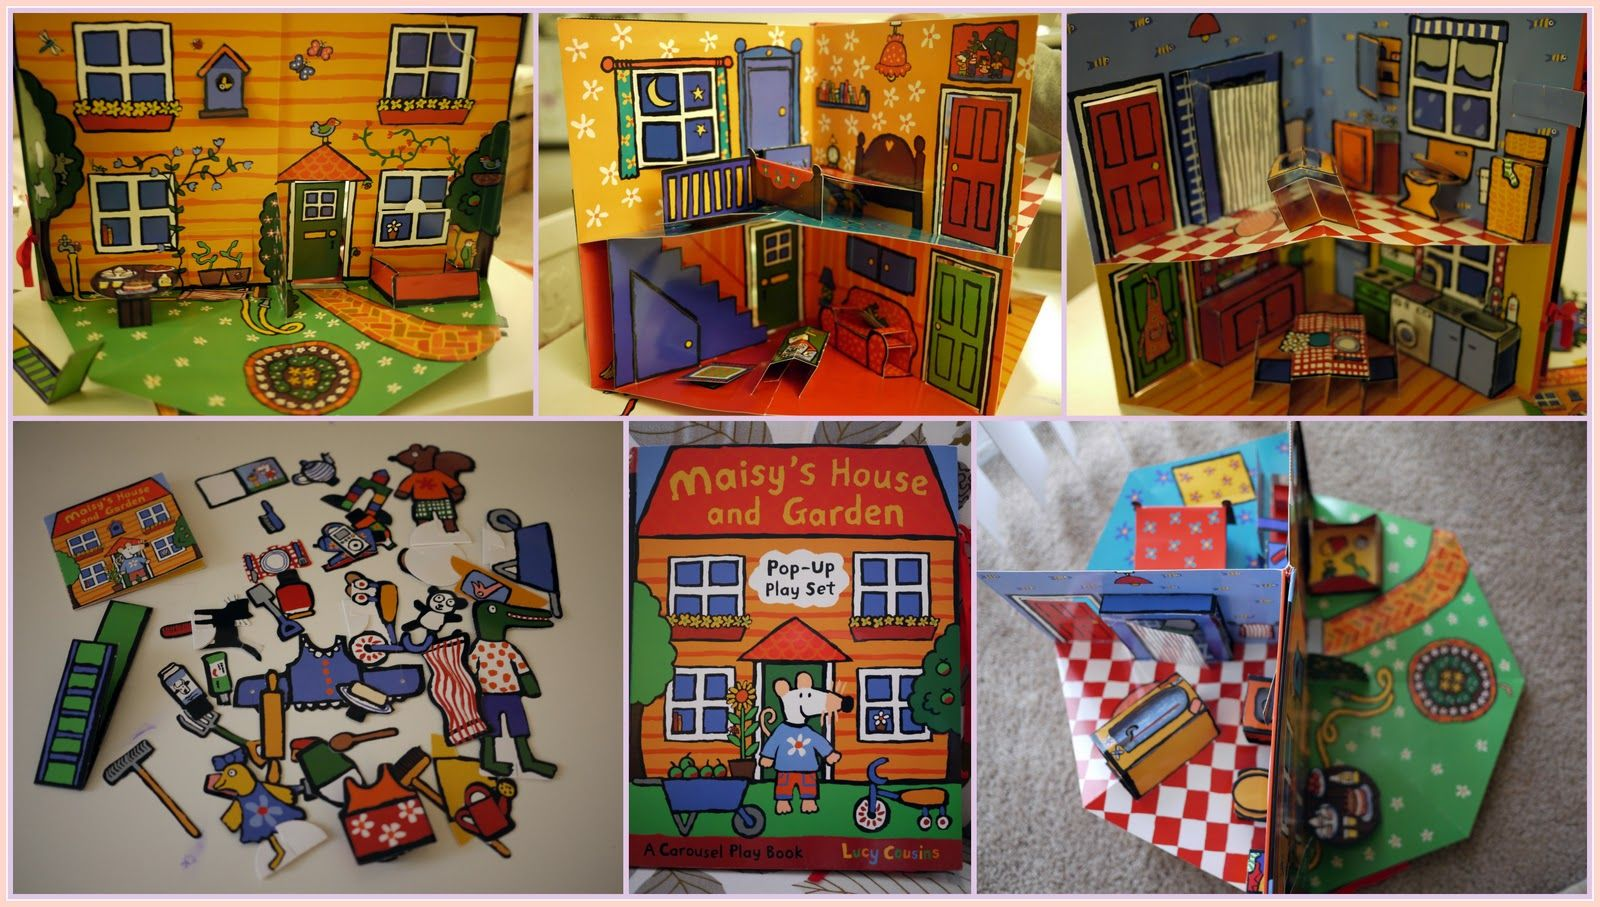 Maisy S House And Garden Pop Up Play Set A Carousel Play Book Lucy Cousins Paper Doll House Pop Up Book Pop Up Play